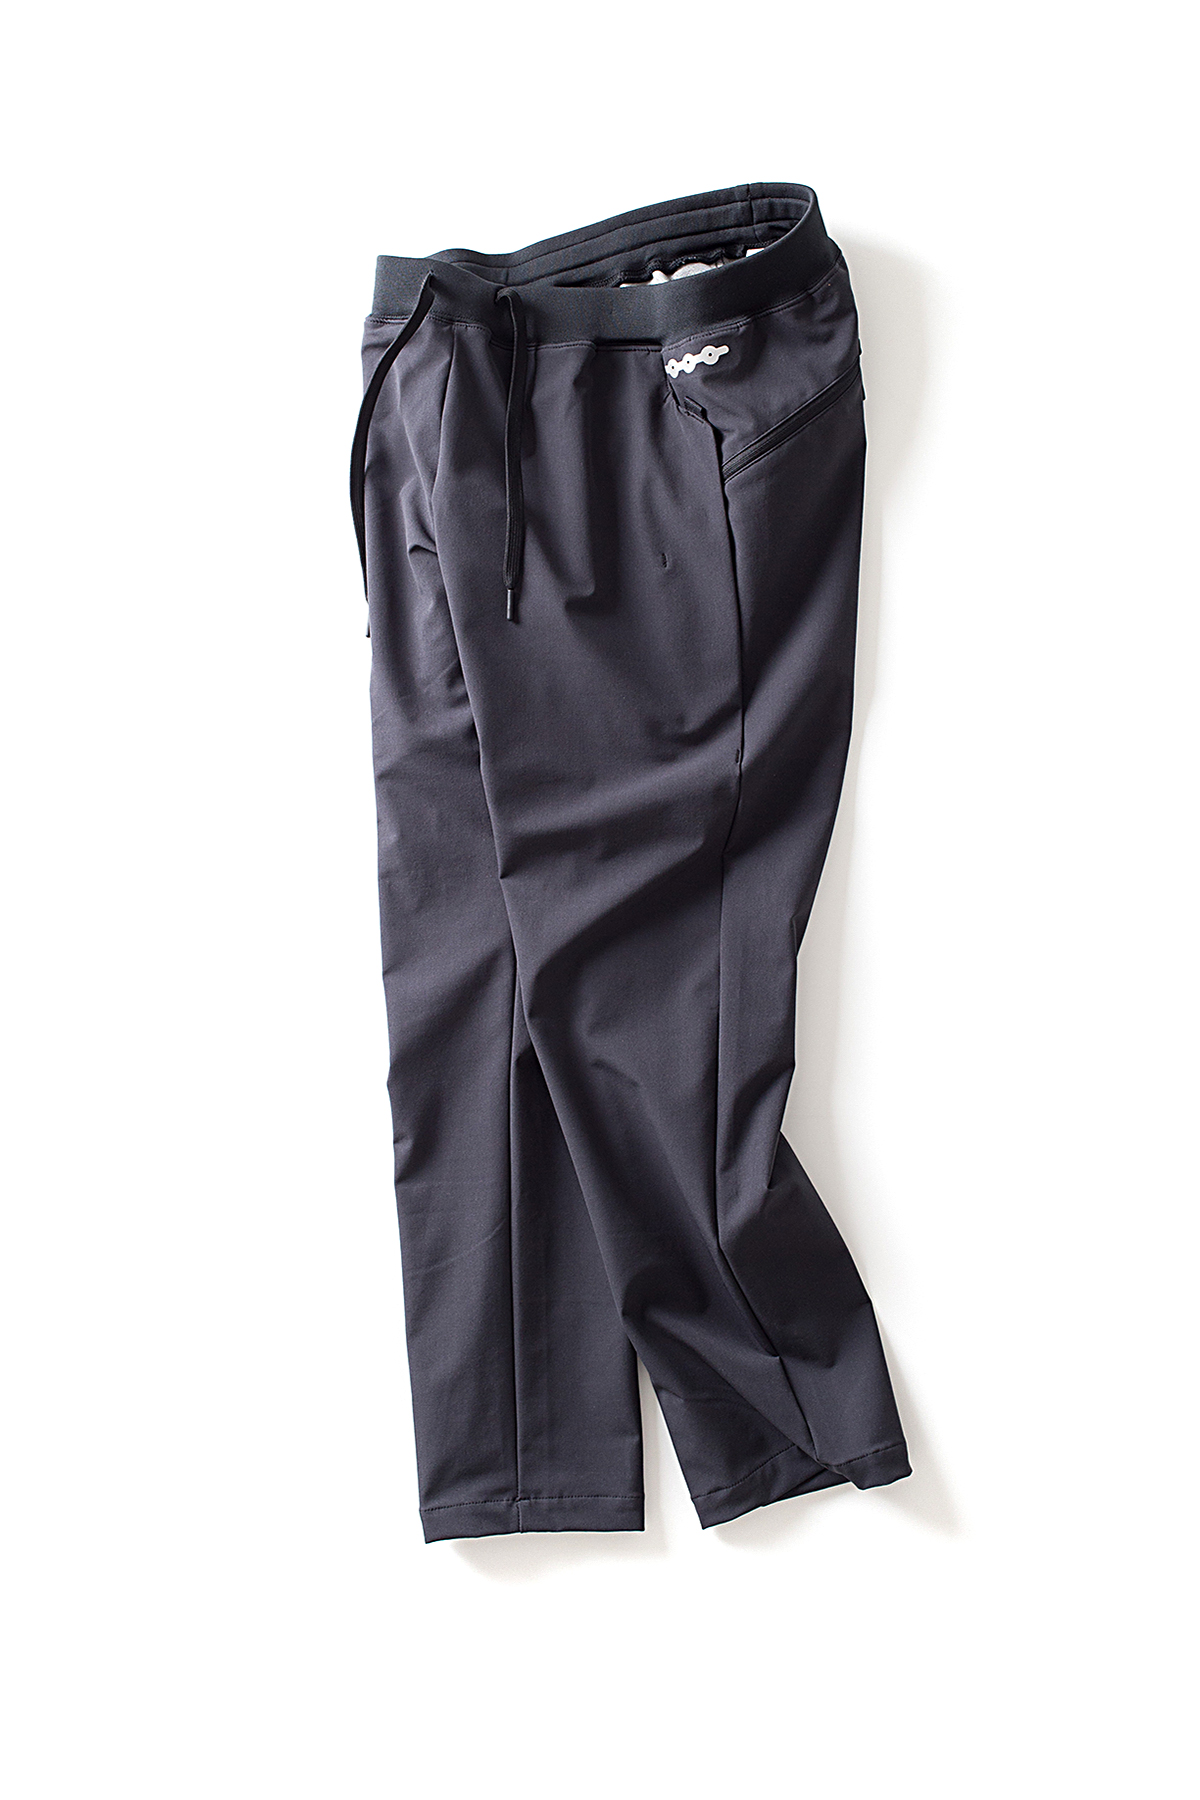 alk phenix : Crank Ankle Pants / Tech-urake (Black)